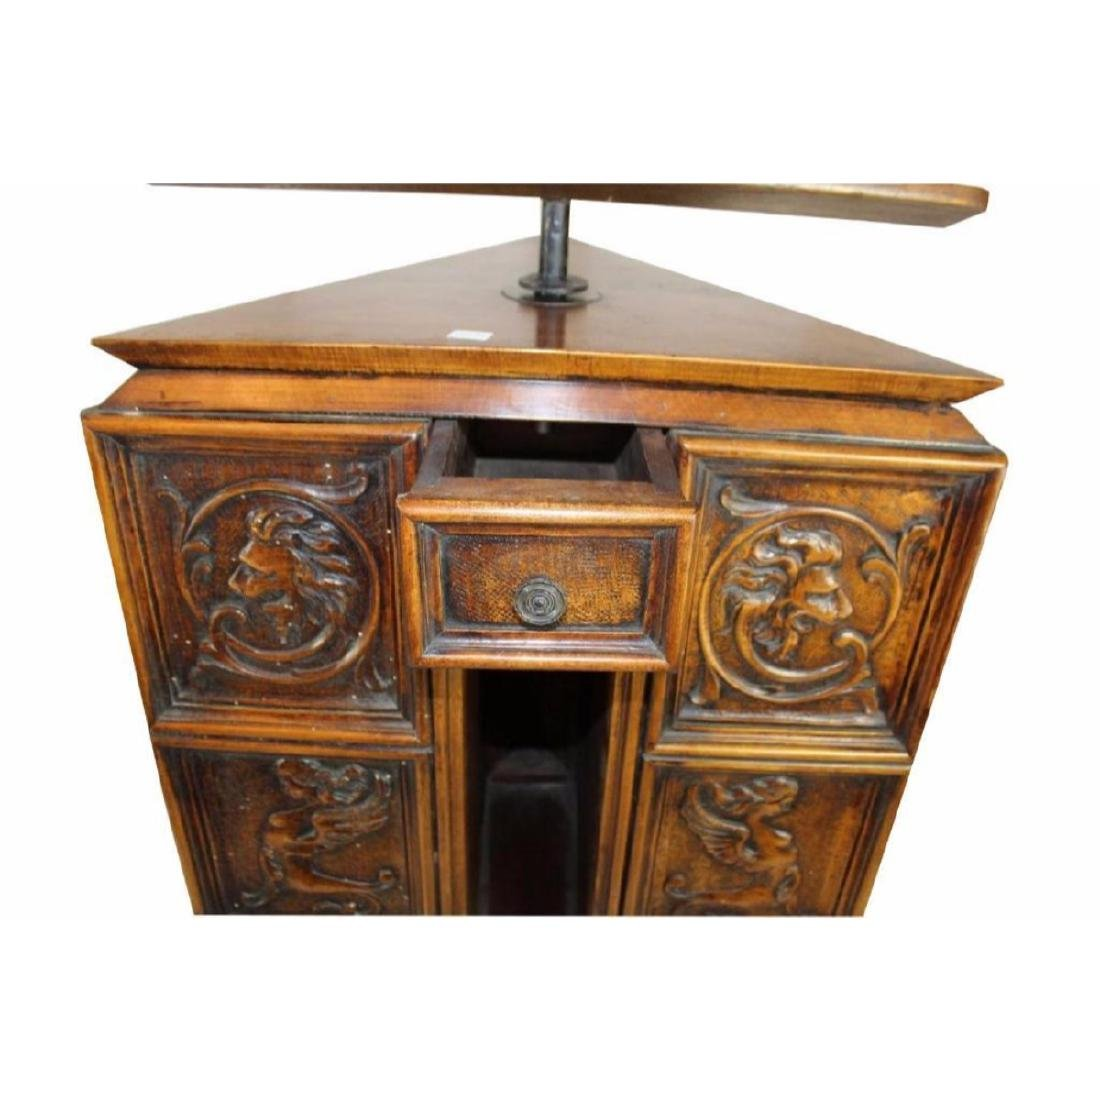 Italian Gothic Revival Carved Oak Lecturn - 4